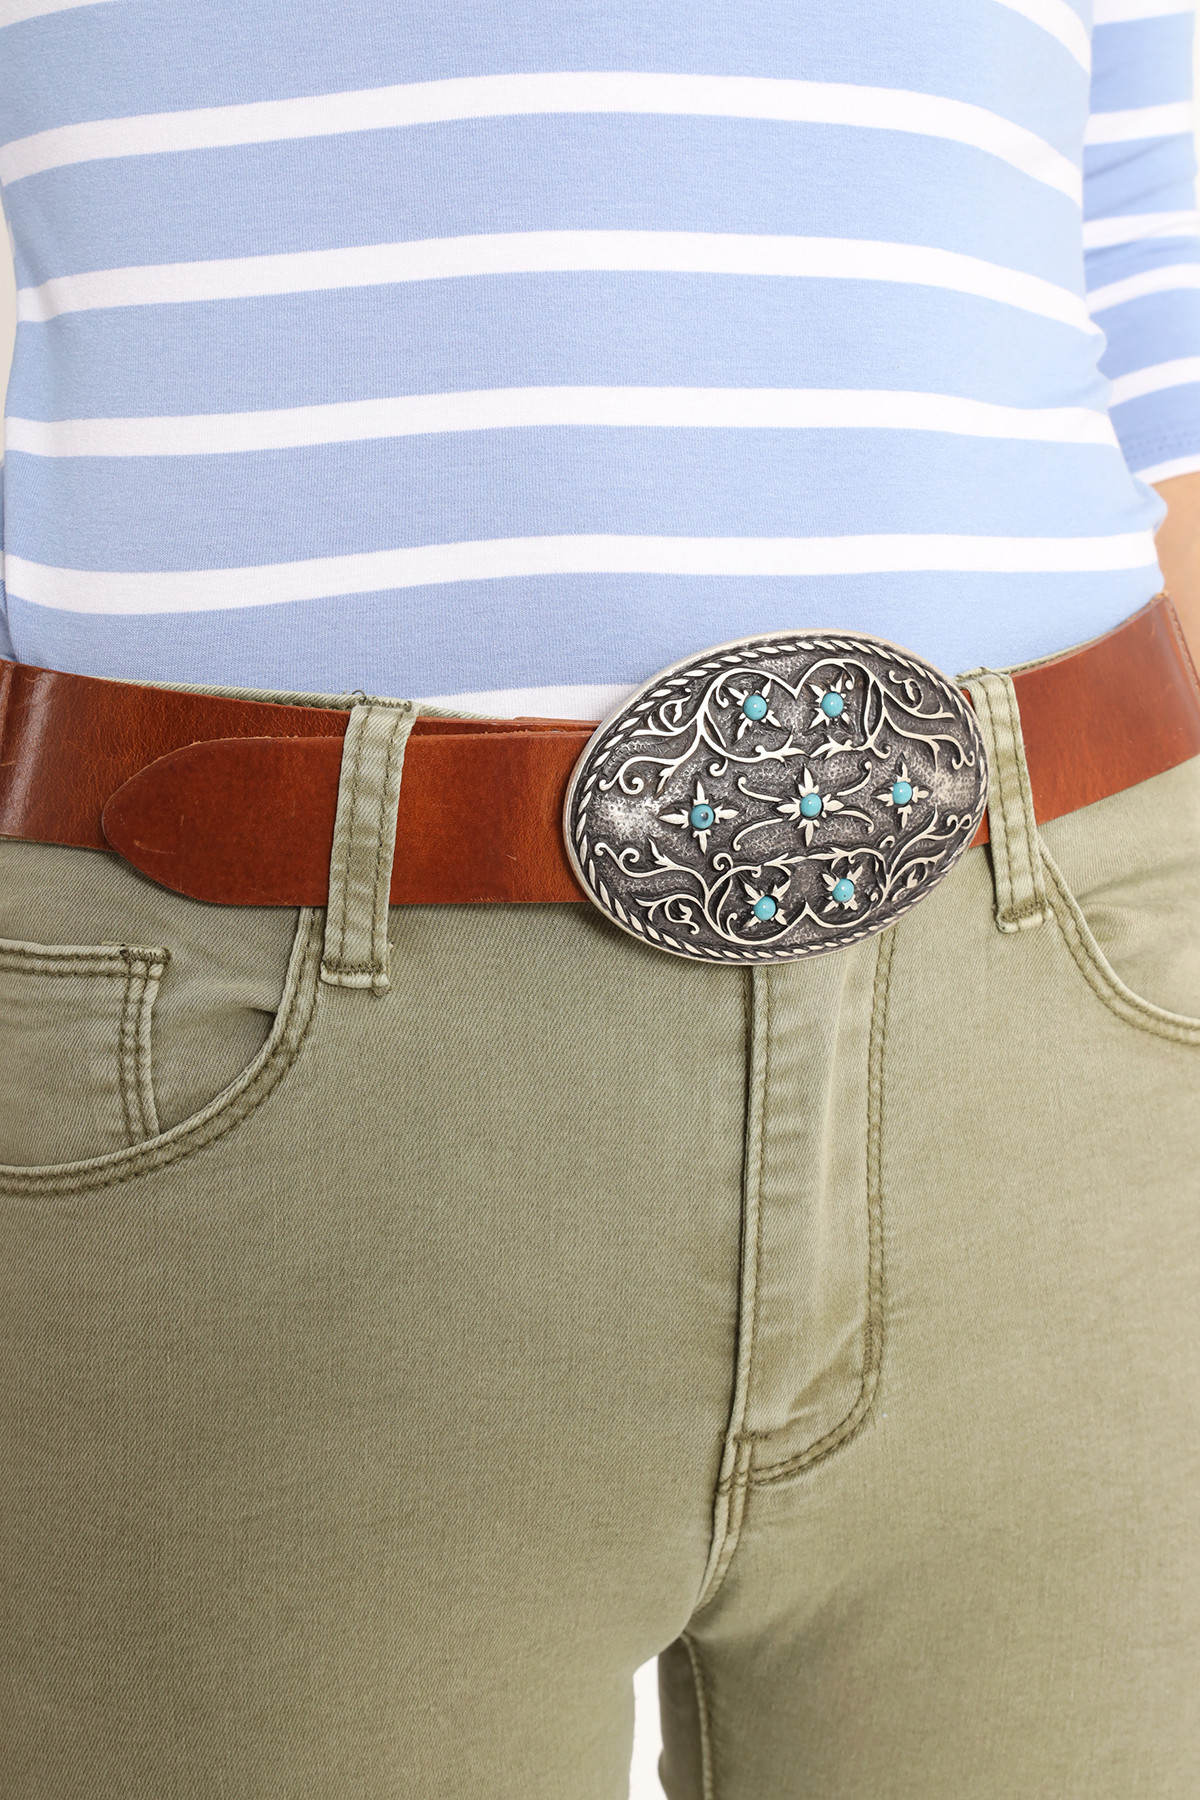 Belt Buckle Oval Aged Printed